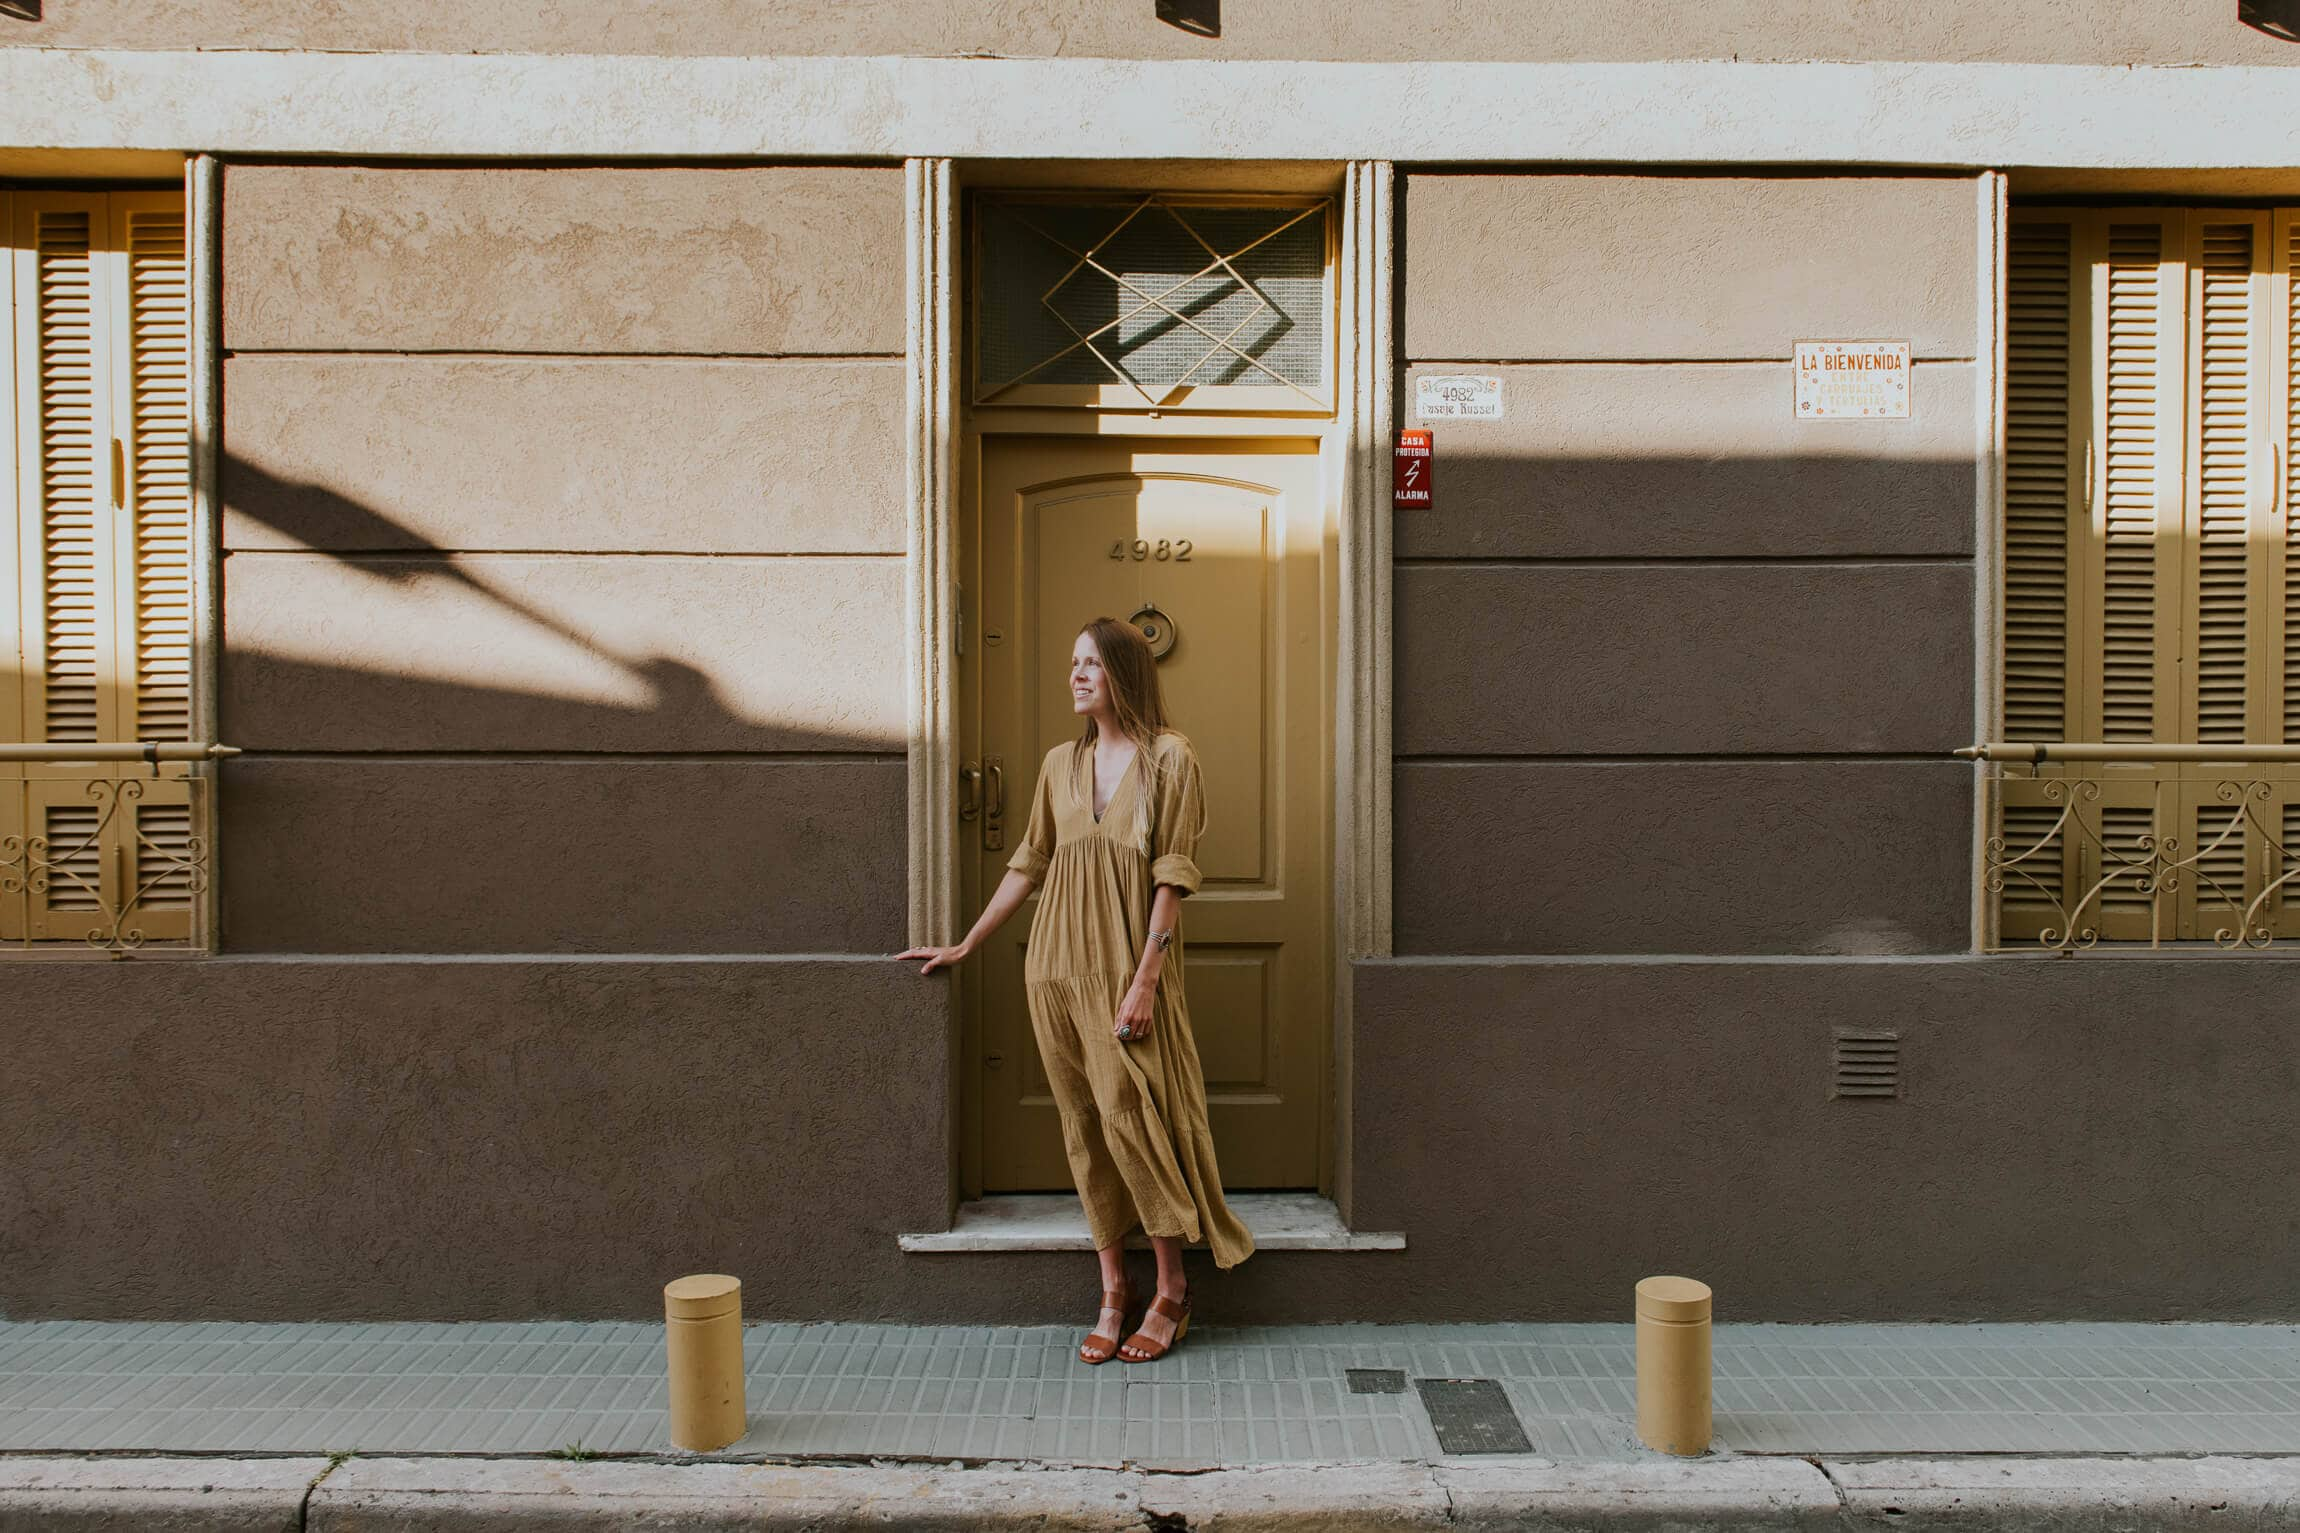 A woman in a yellow dress stands in front of a monochrome beige home